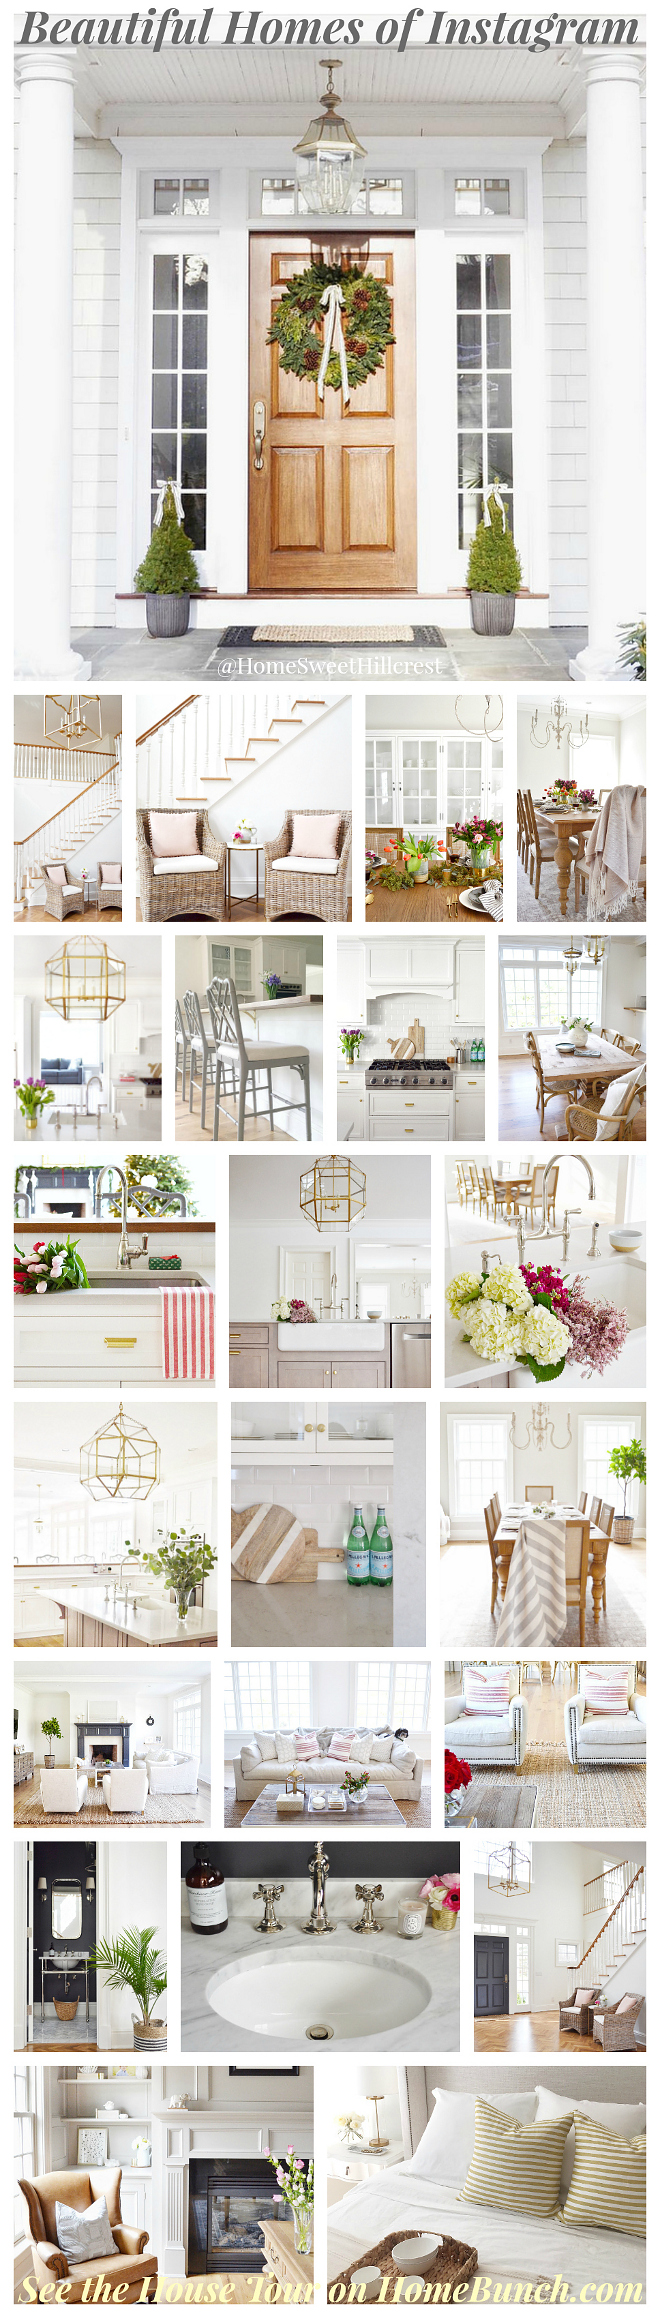 Beautiful Homes of Instagram. Irina's home is soothing, calm and full of ideas. I could live here!